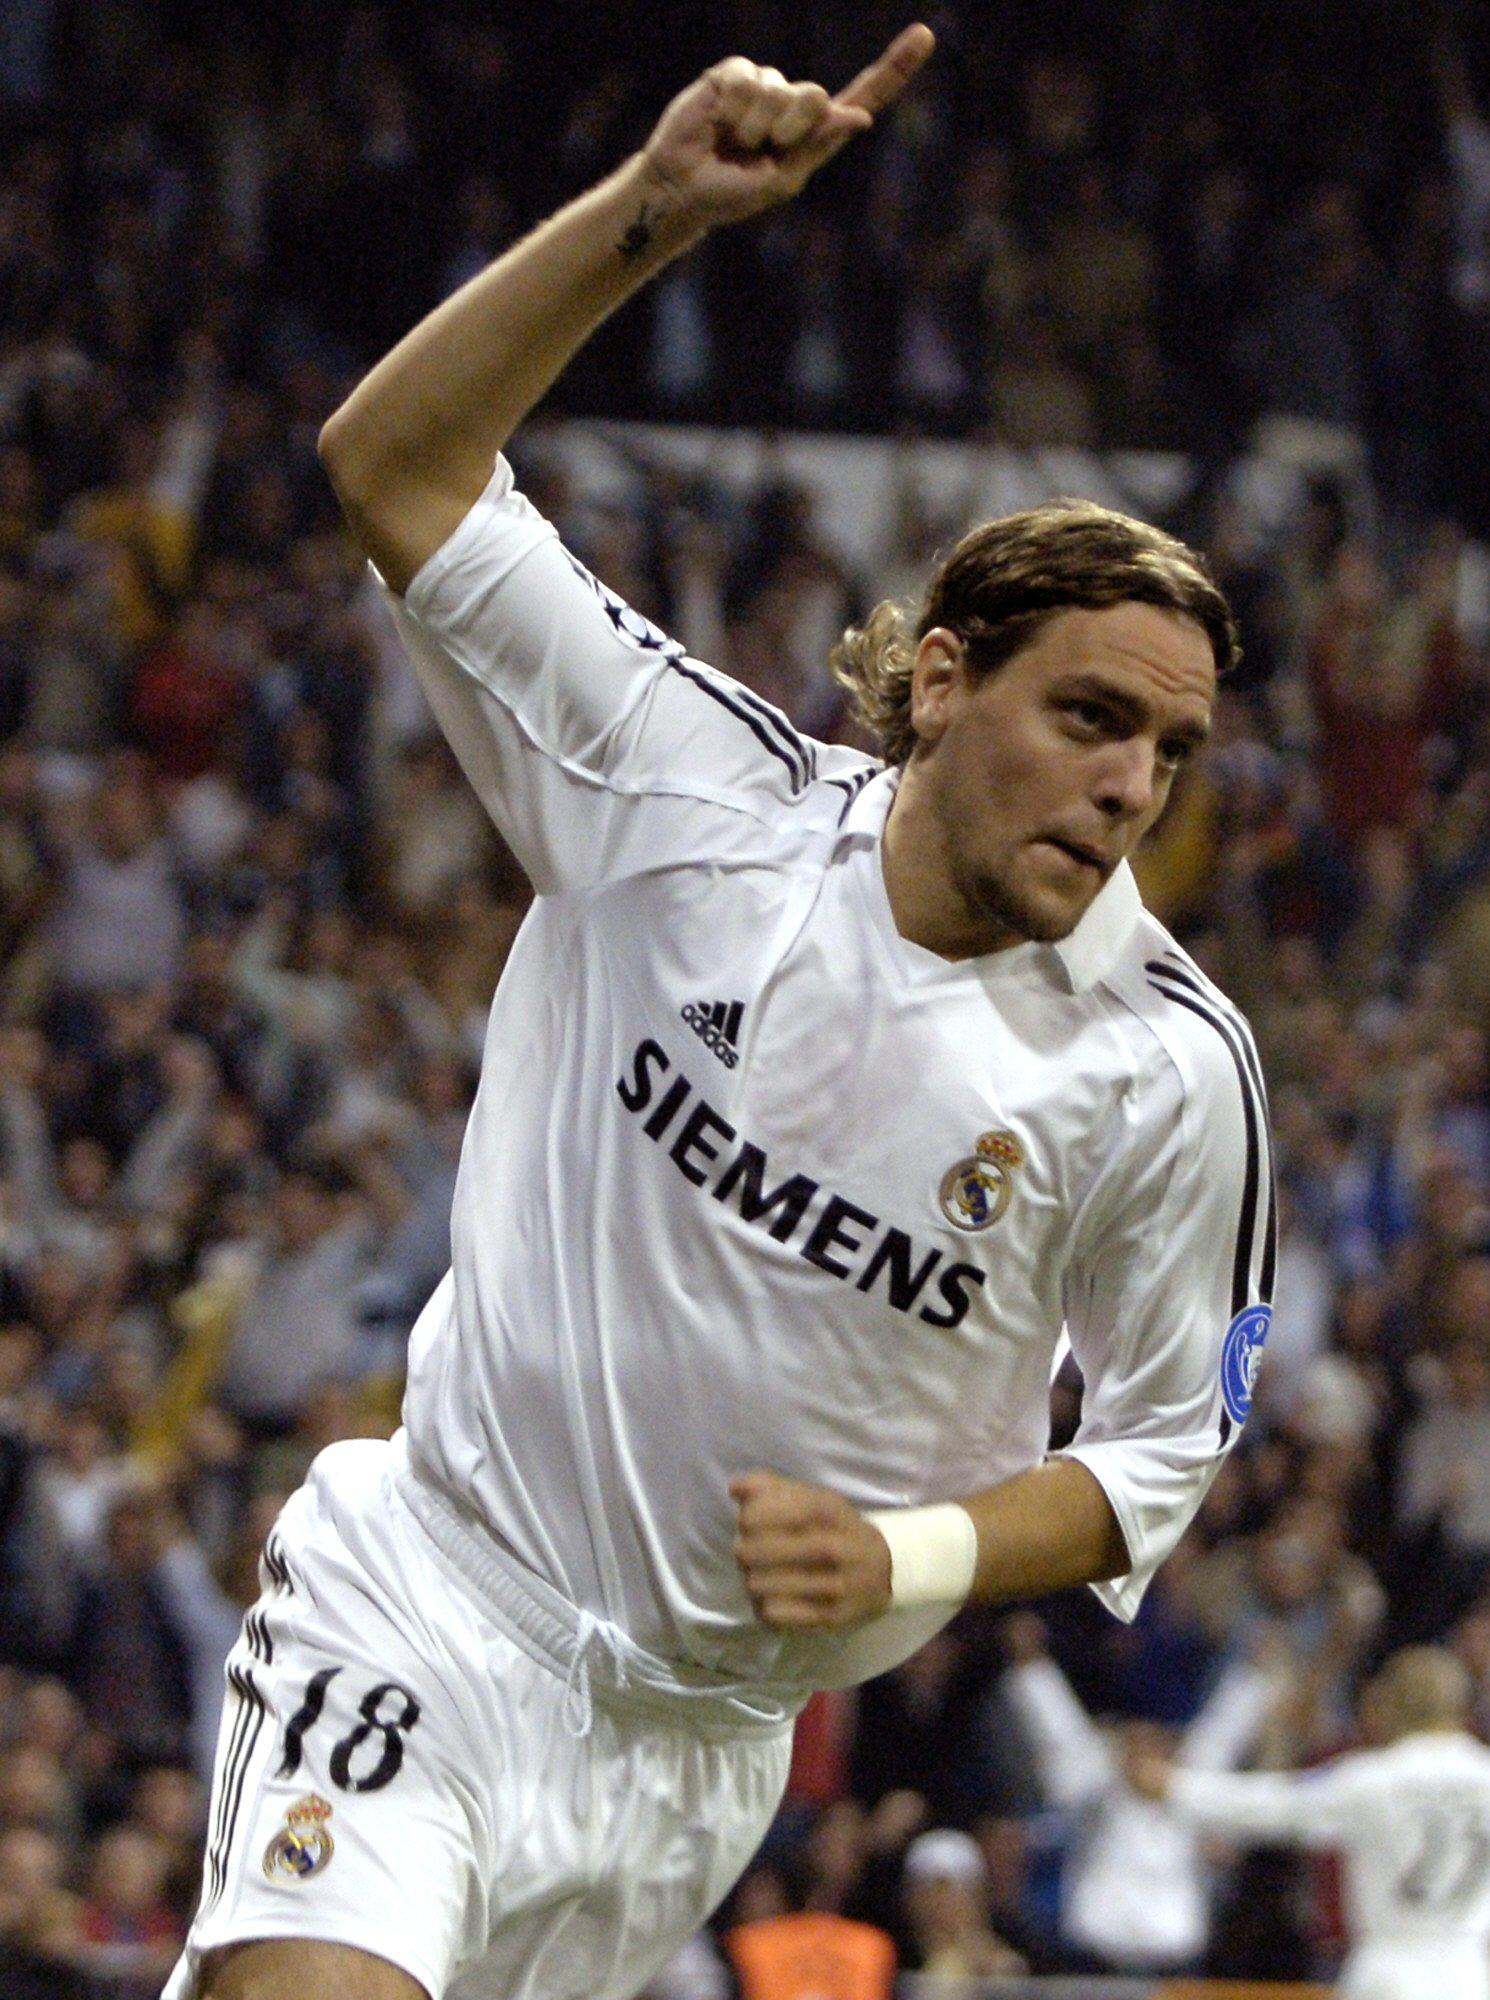 He did score one goal for Madrid in Europe